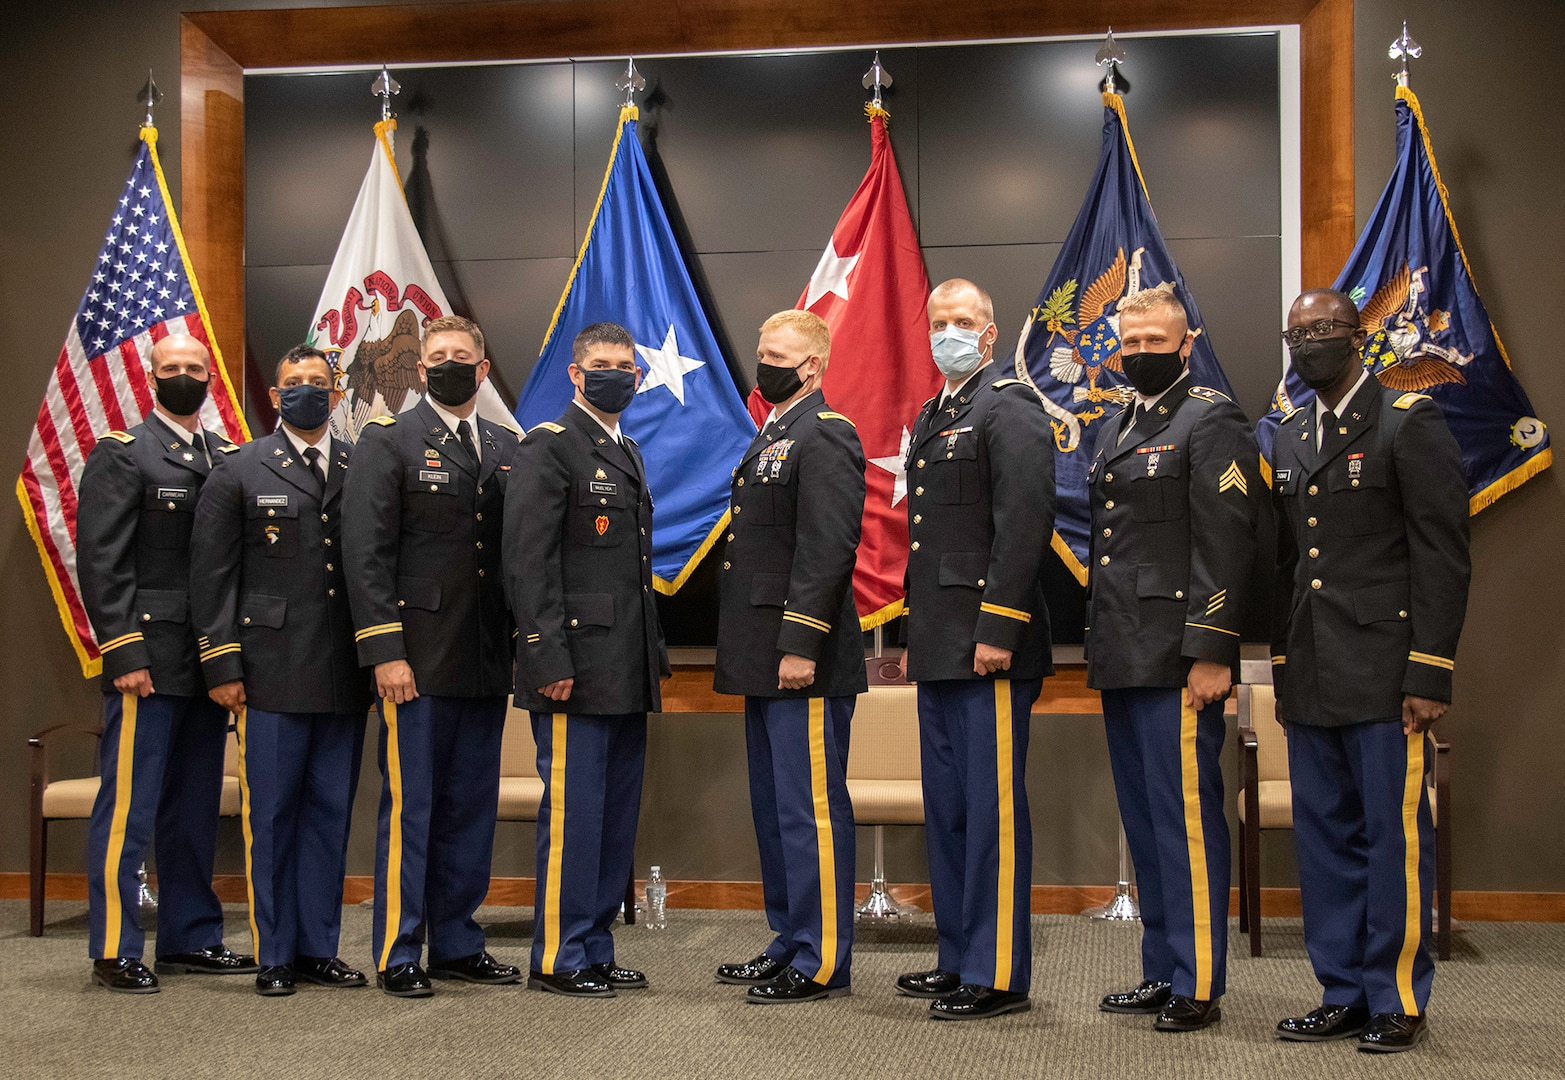 Eight Illinois Army National Guard Soldiers graduated from the ILARNG Officer Candidate School during a ceremony Aug. 23 at the Illinois Military Academy, Camp Lincoln, Springfield, Illinois.